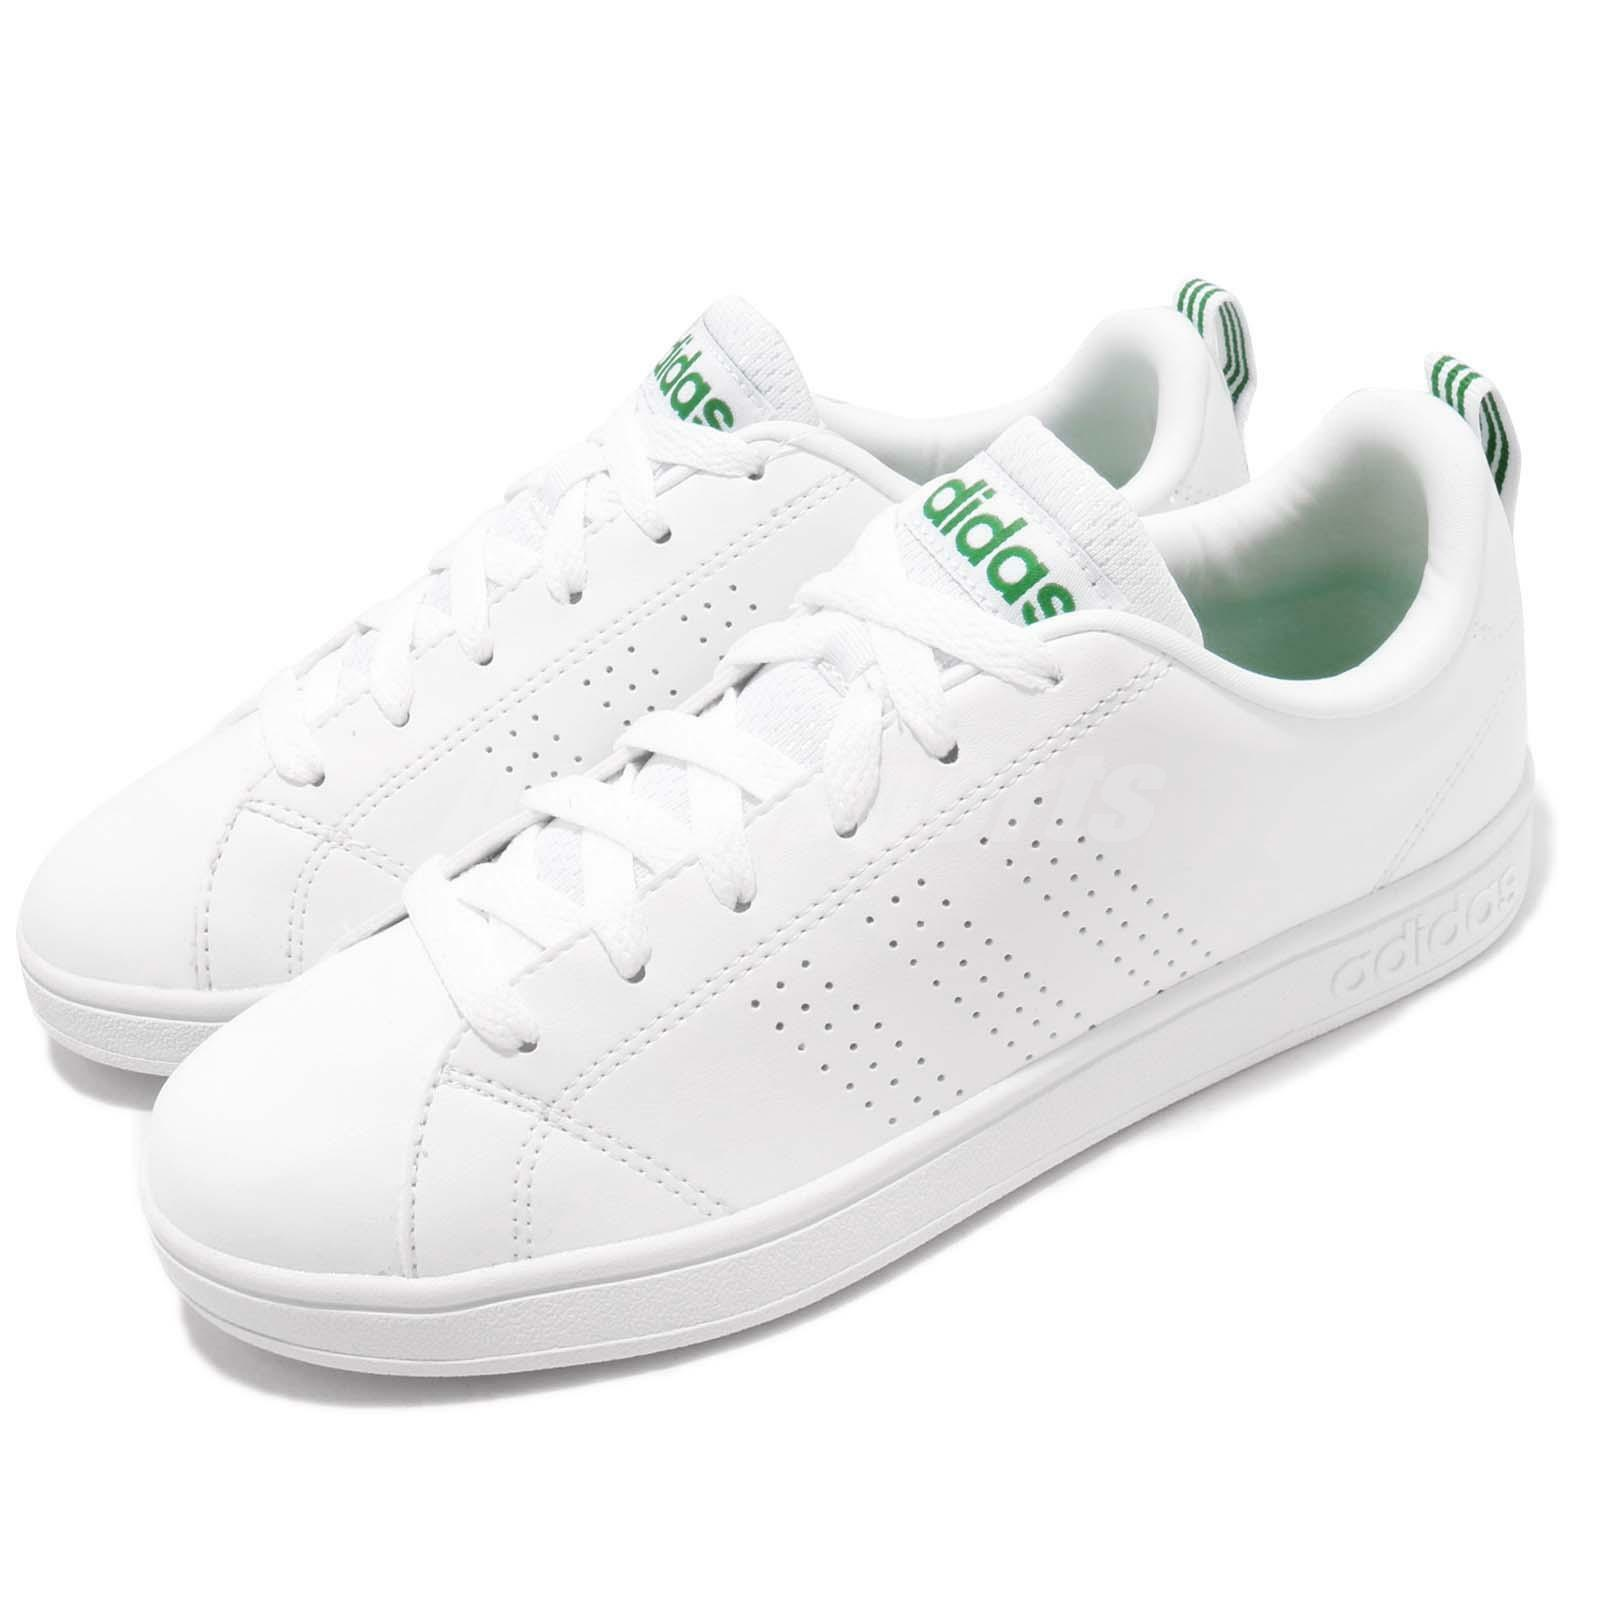 Adidas Neo  Label Advantage Clean VS bianca verde Men Scarpe Casual scarpe da ginnastica F9251  saldi